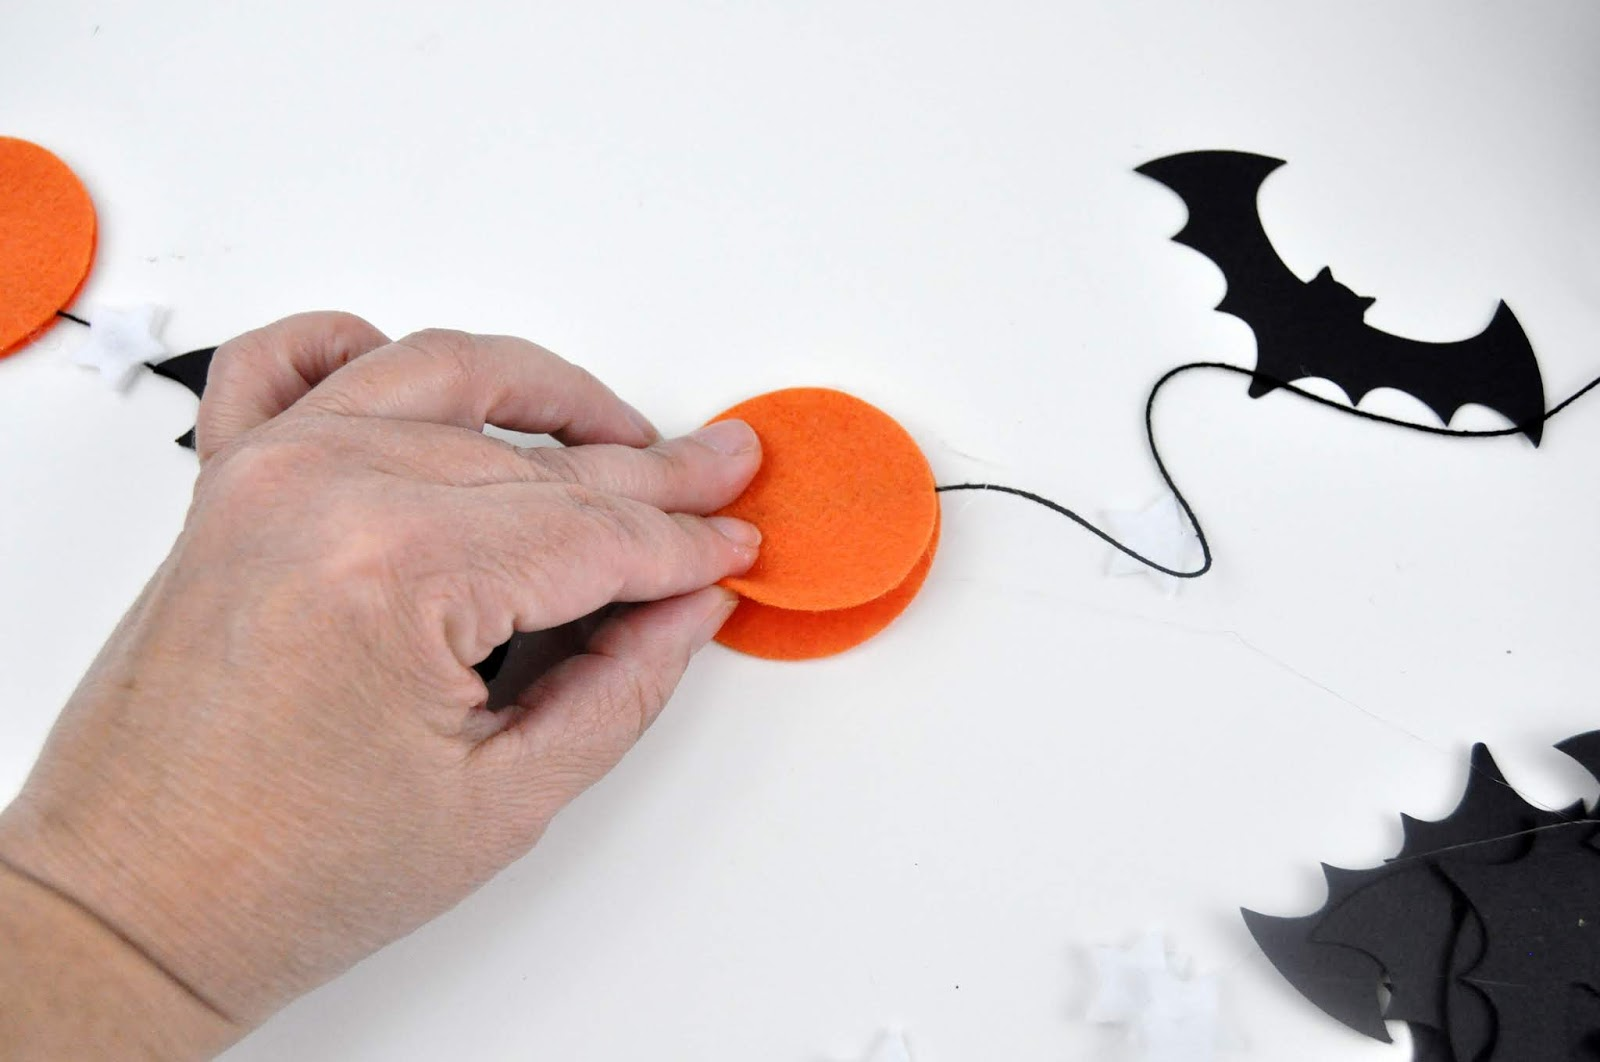 No-sew Halloween Felt Banner tutorial by Jen Gallacher using felt and paper. Halloween Banner tutorial. #feltbanner #halloweencraft #jengallacher #diecutting